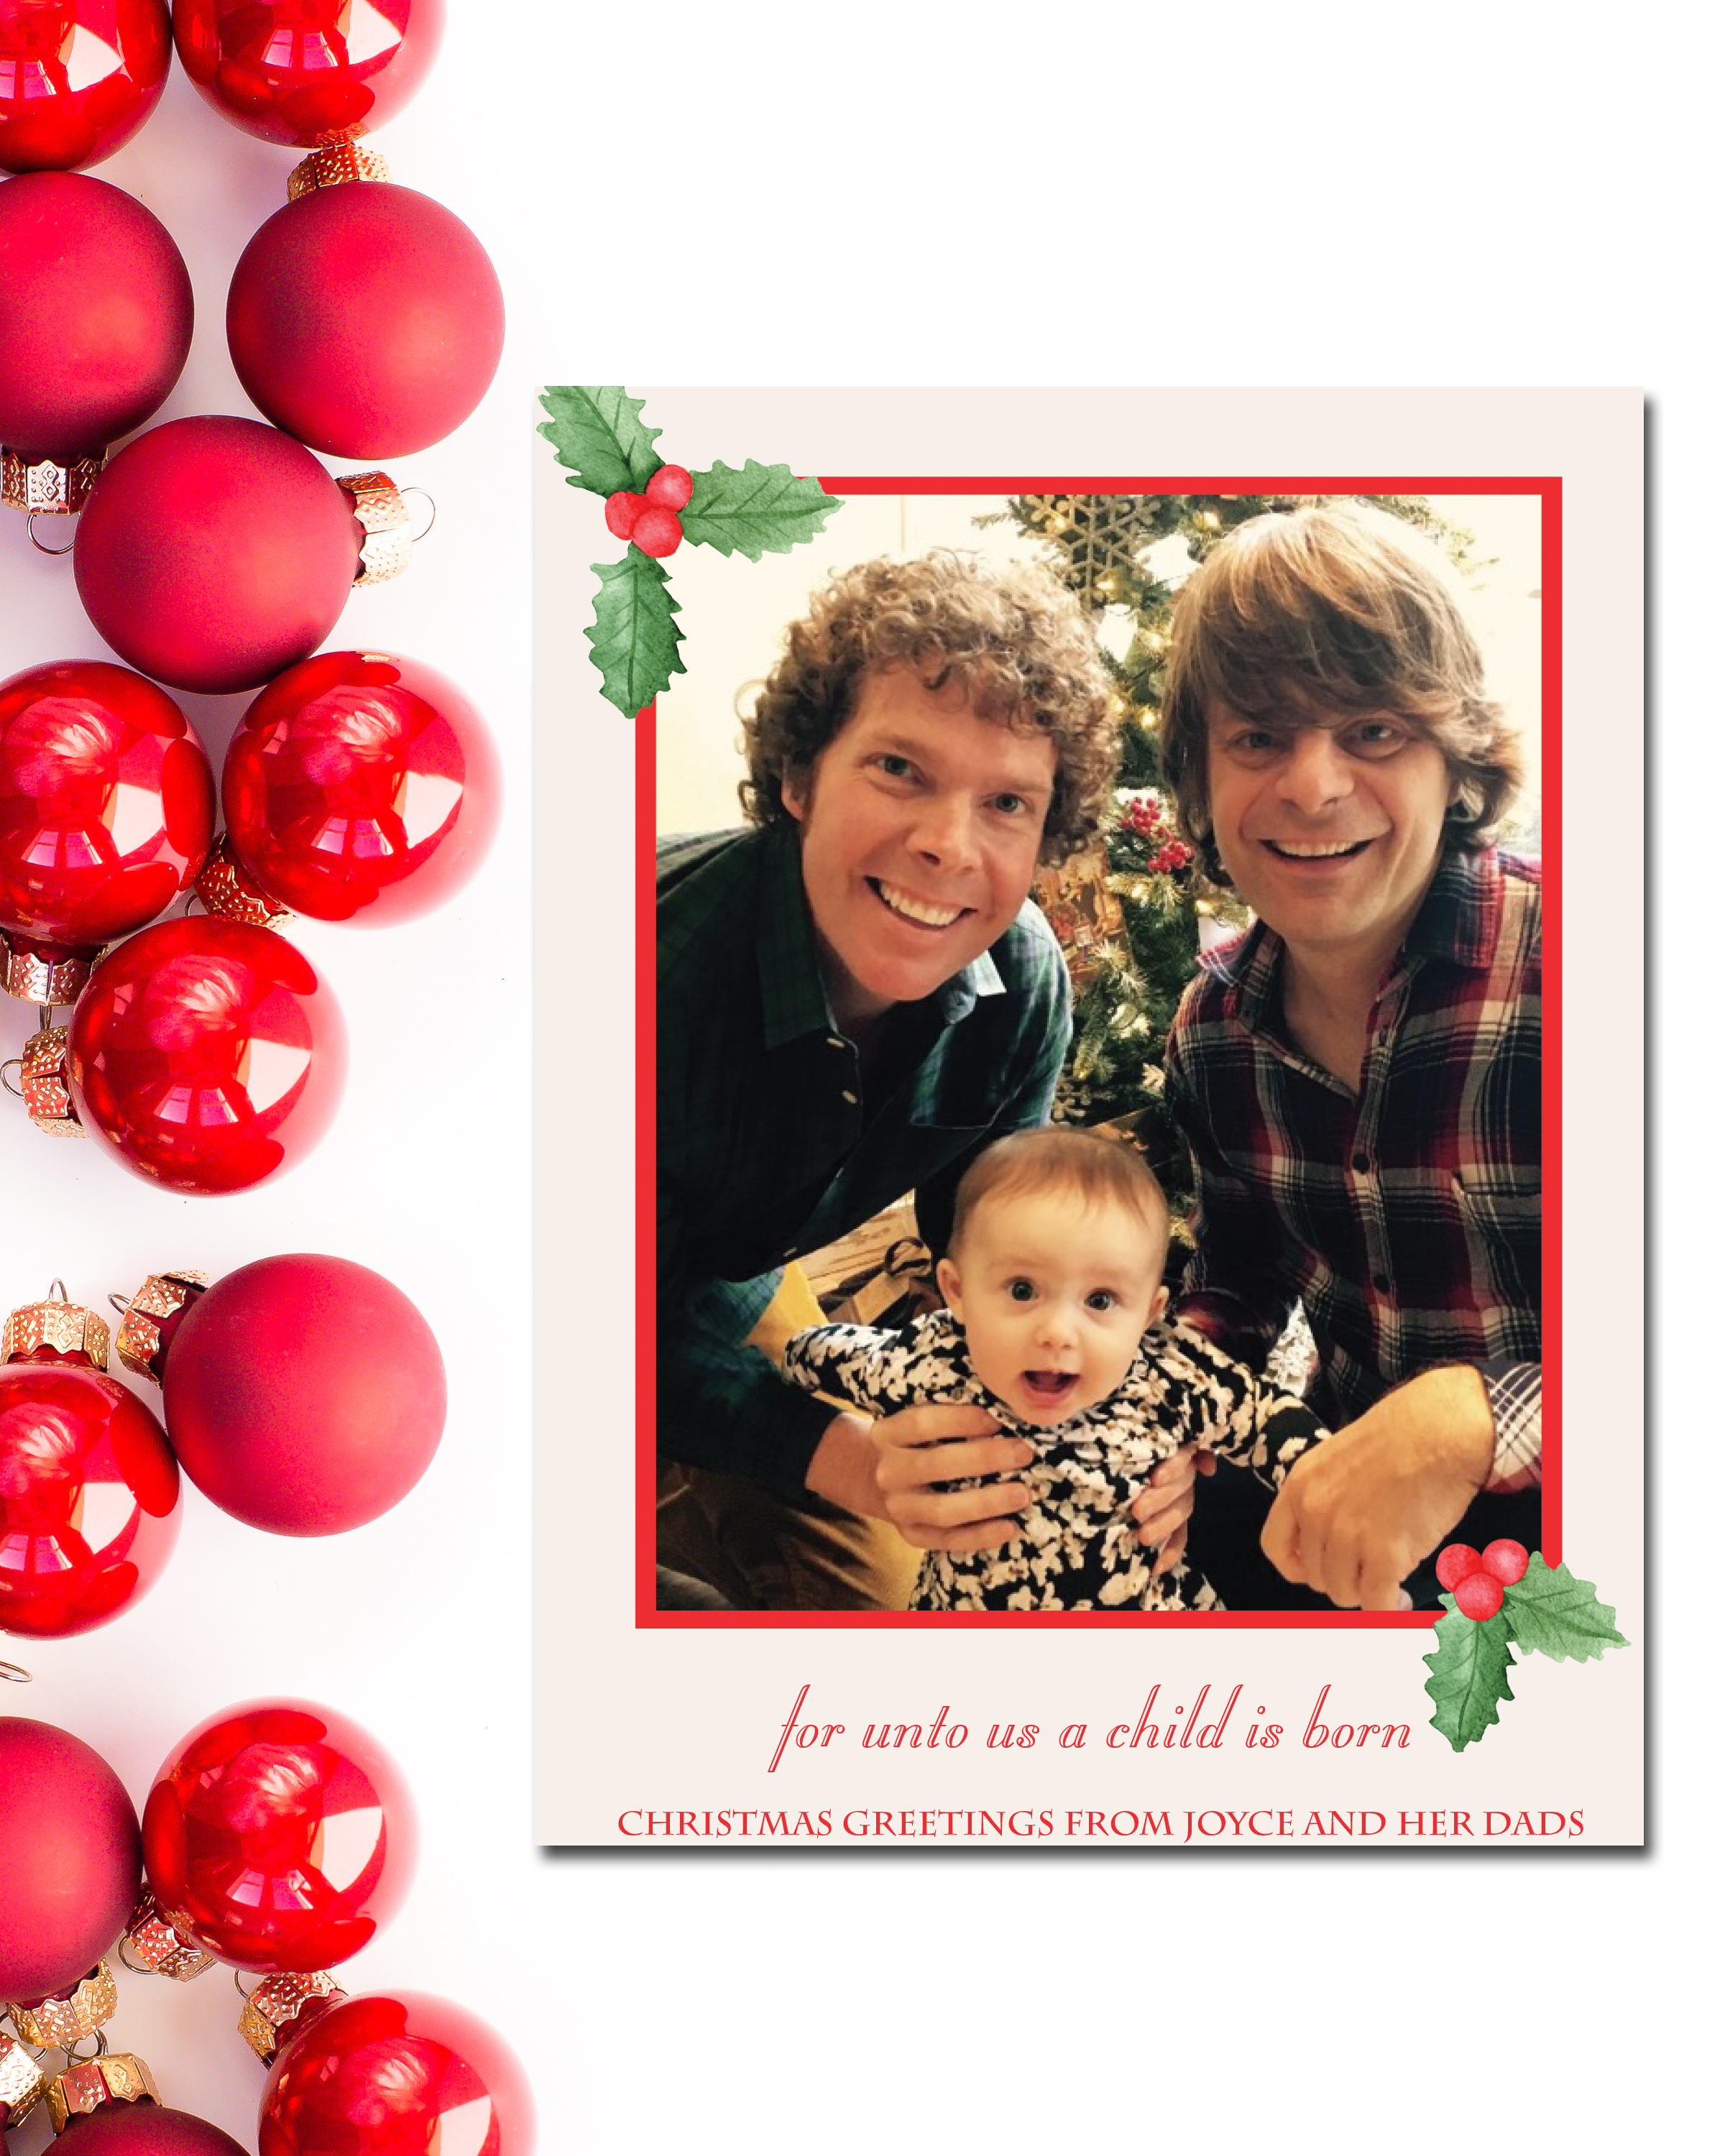 I loved getting to design this holiday card + adoption announcement for darling Joyce and her sweet dads!